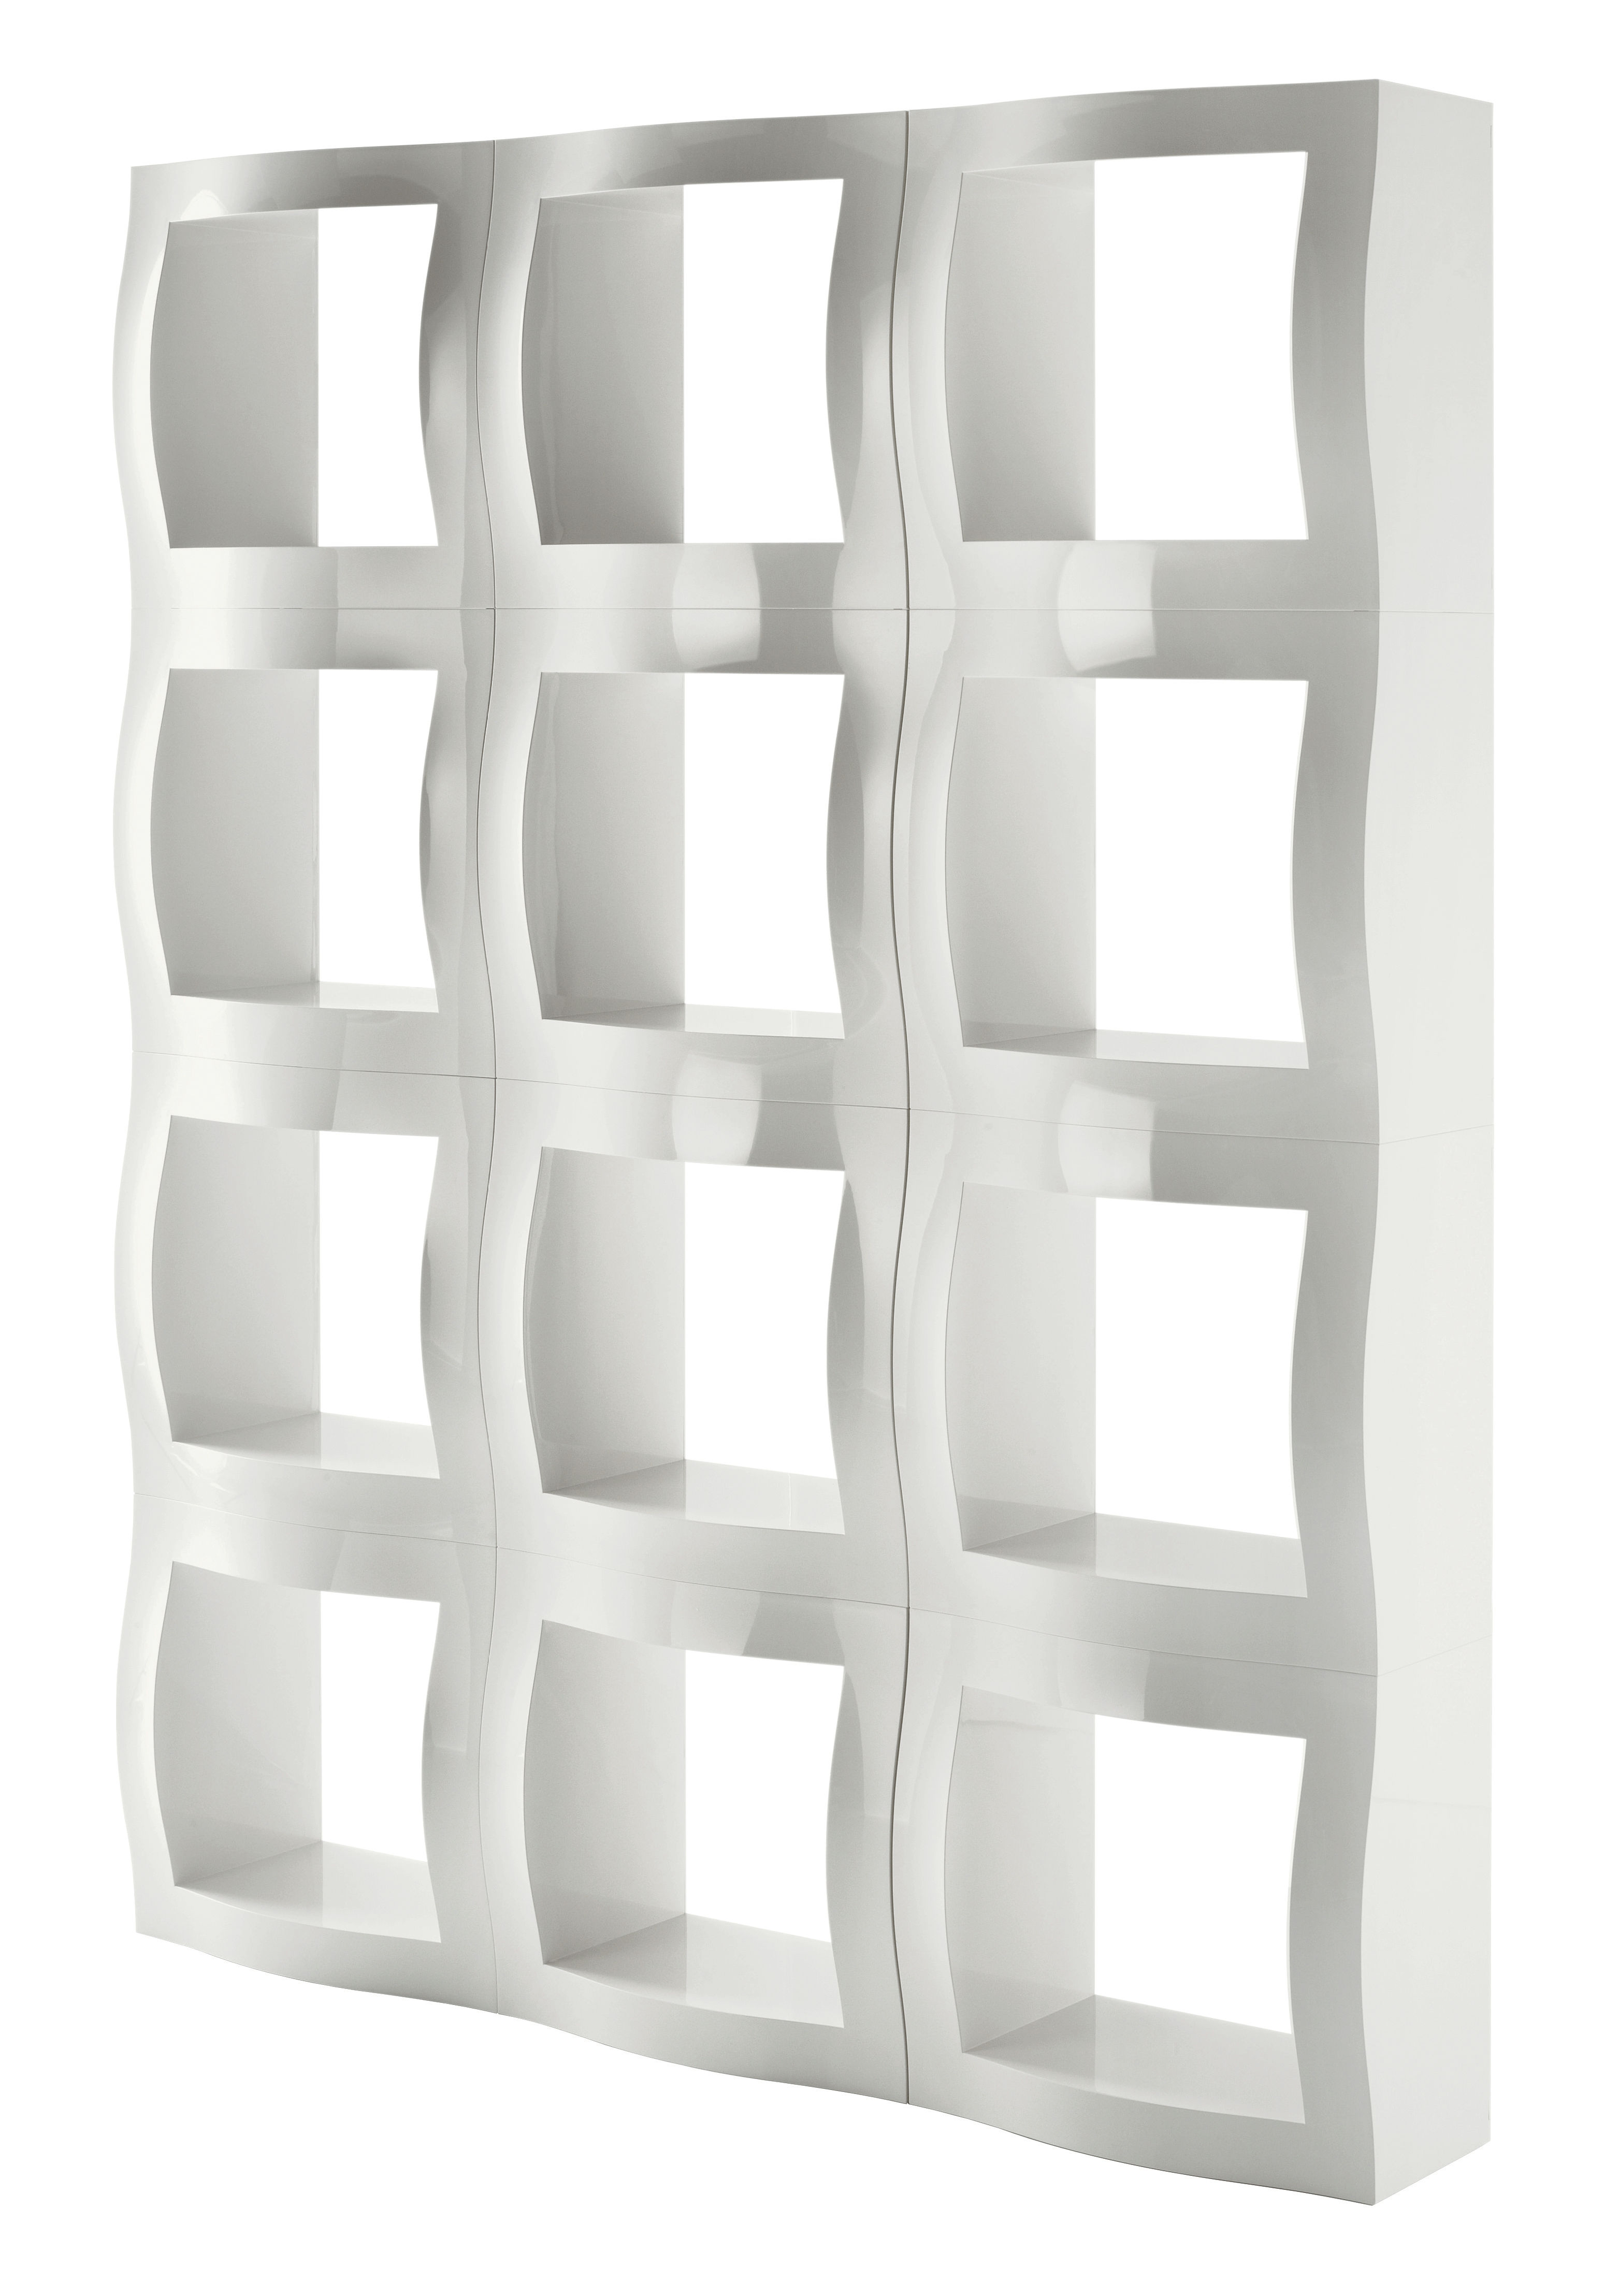 etag re boogie woogie cube modulaire 52 x 52 cm blanc sans fond magis. Black Bedroom Furniture Sets. Home Design Ideas